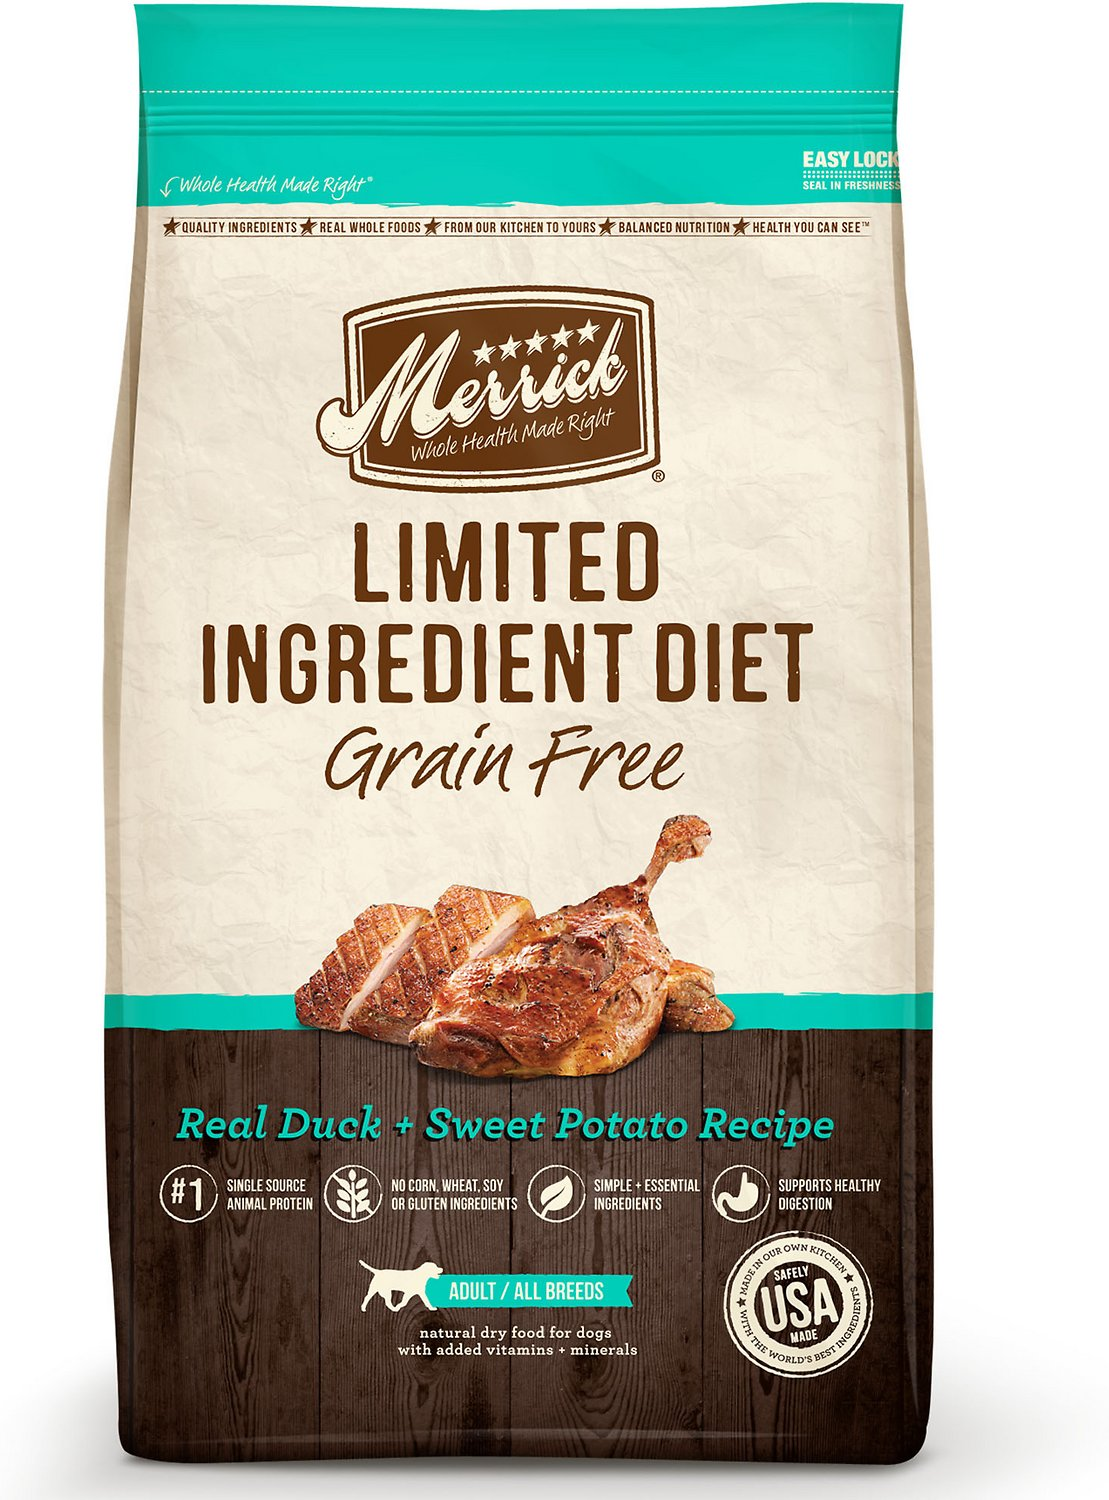 Merrick Limited Ingredient Diet Grain-Free Real Duck + Sweet Potato Recipe Dry Dog Food Image